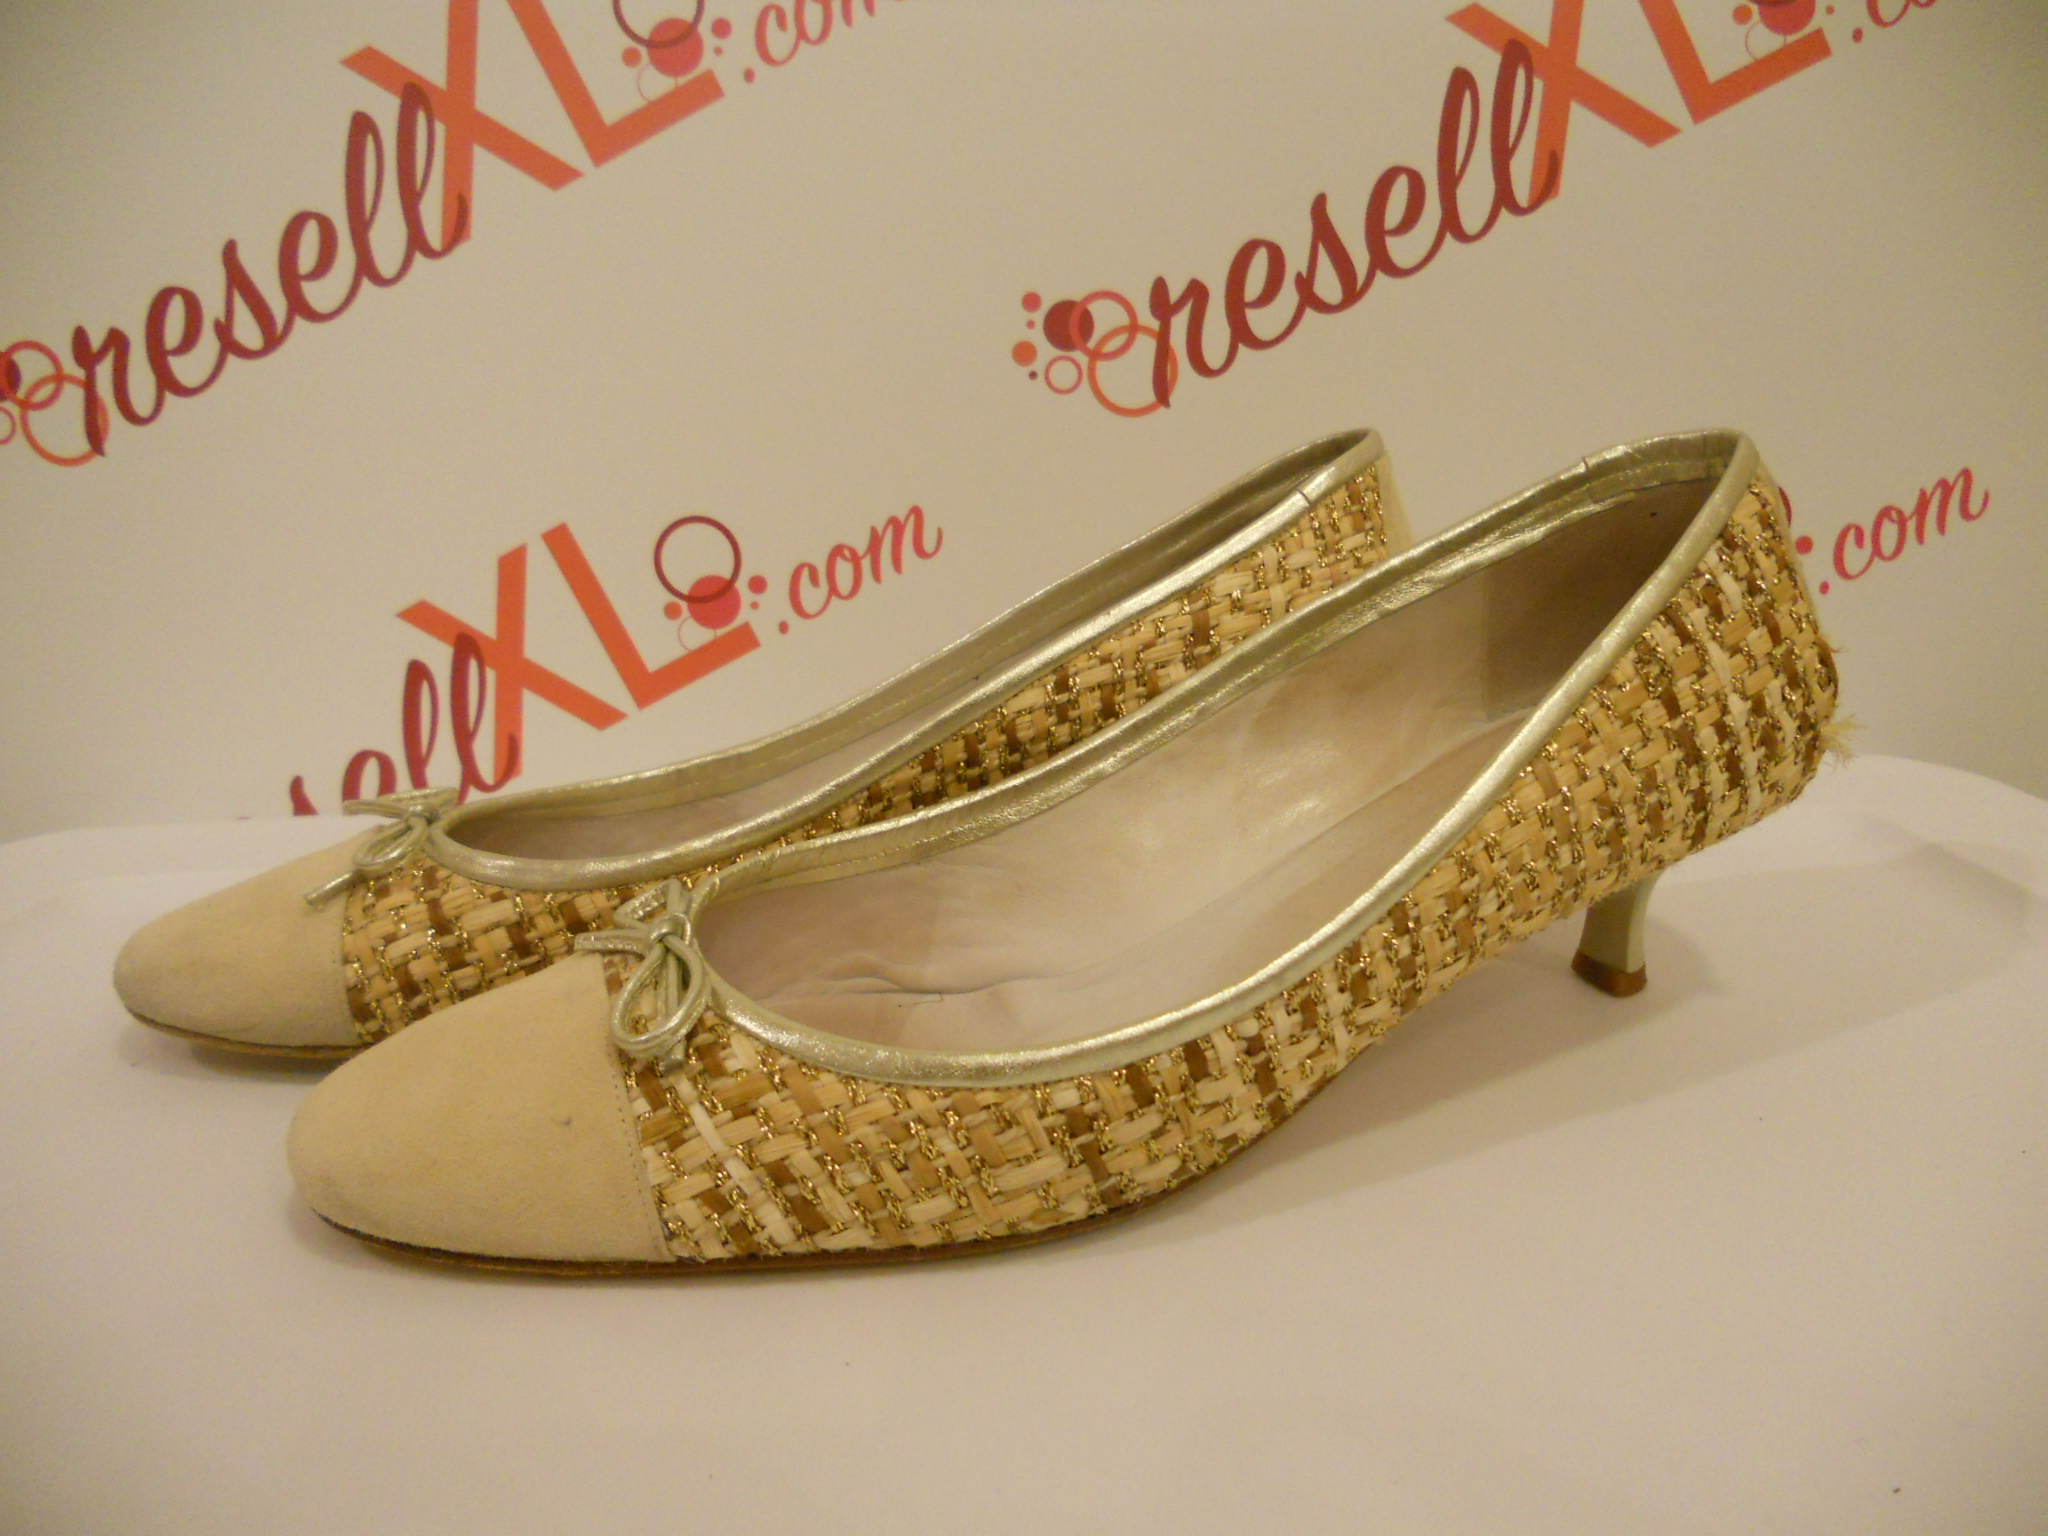 Delman-Size-11-Cream-colred-pumps-with-basket-weave-detail_3053A.jpg